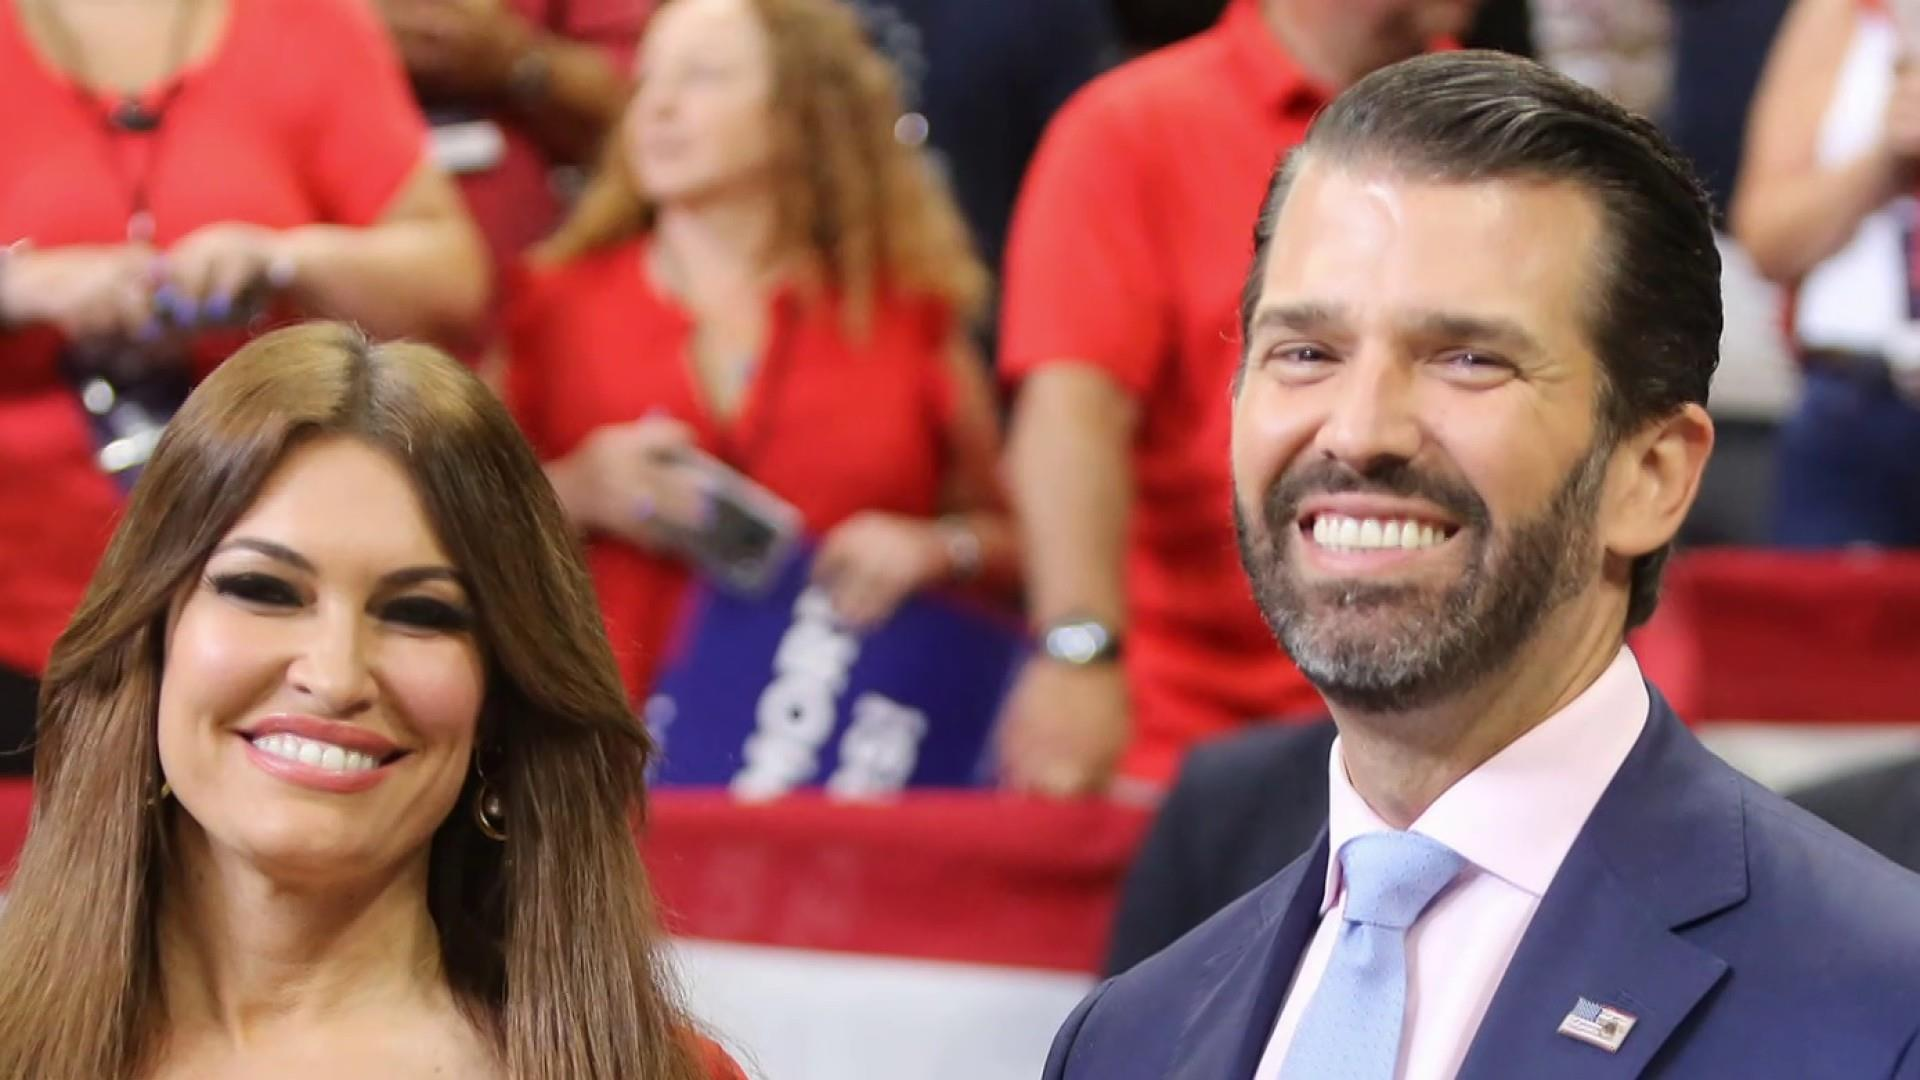 Donald Trump Jr. met with protests amid controversy at University of Florida speaking event